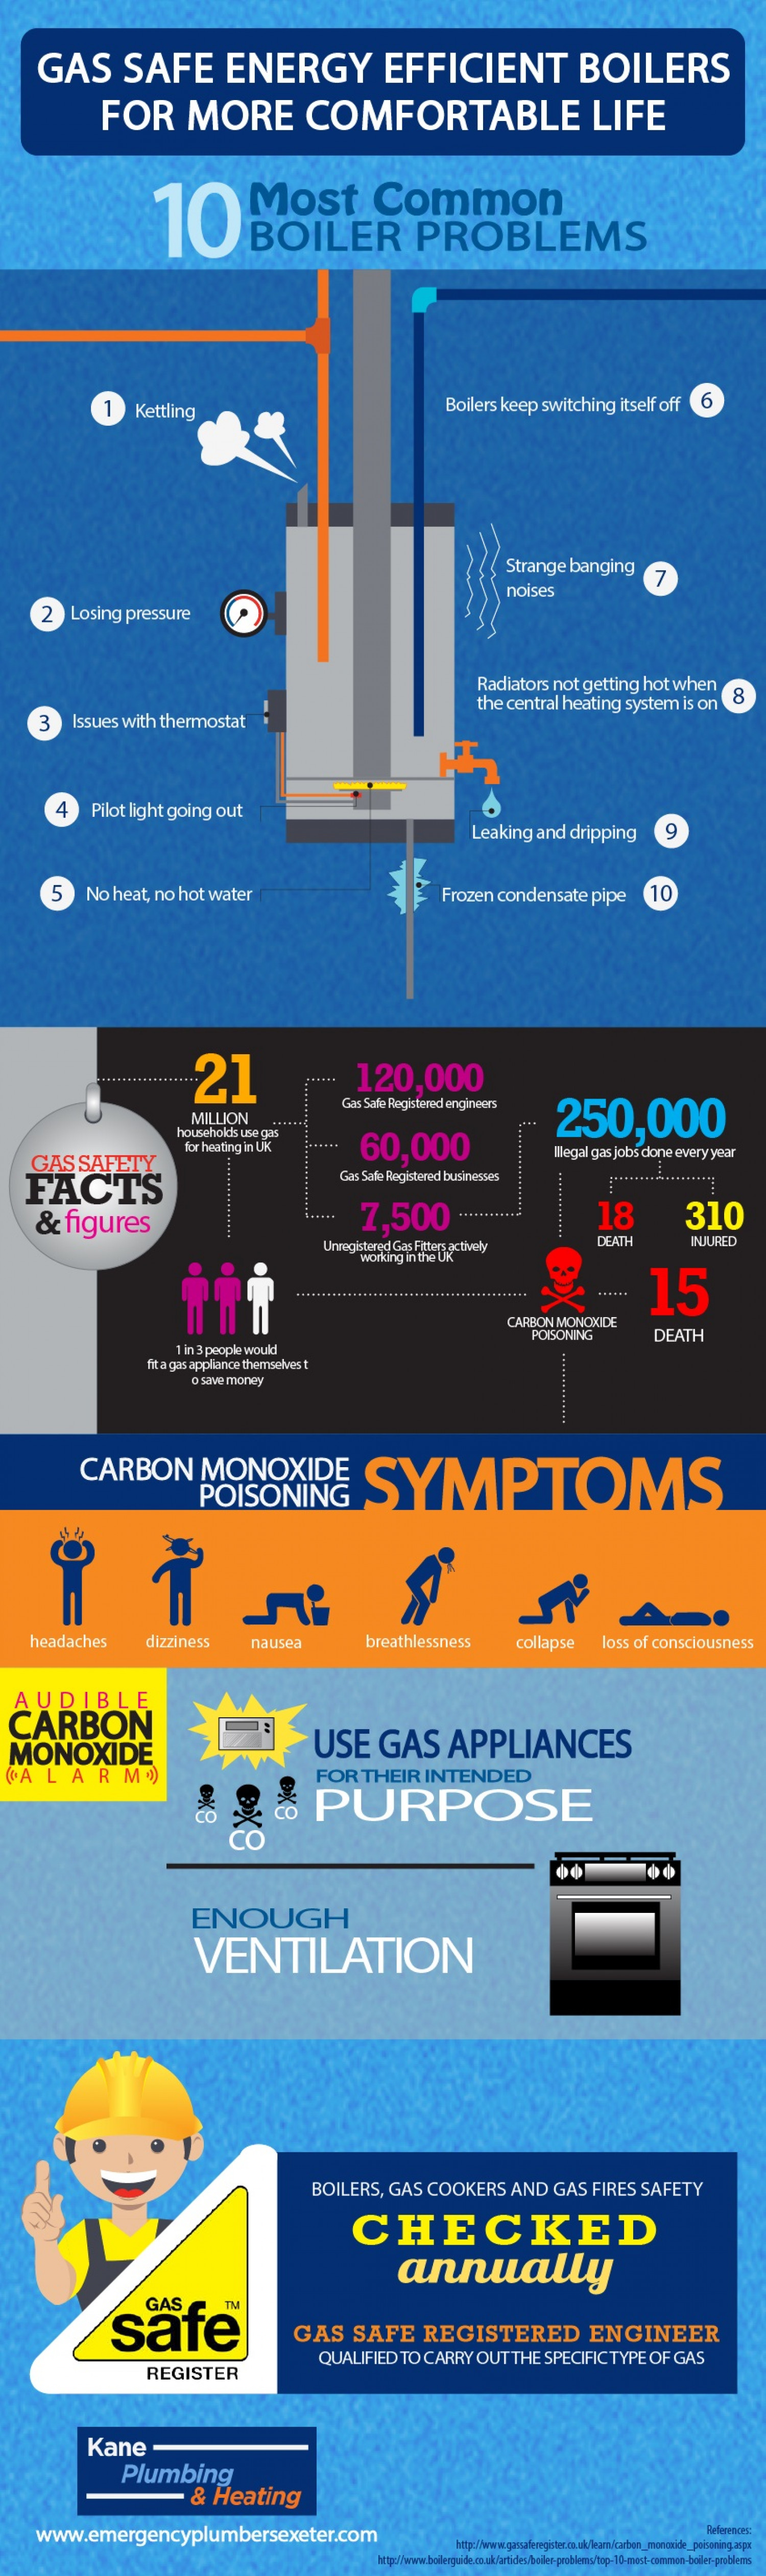 Gas Safe Energy Efficient Boilers for More Comfortable Life Infographic